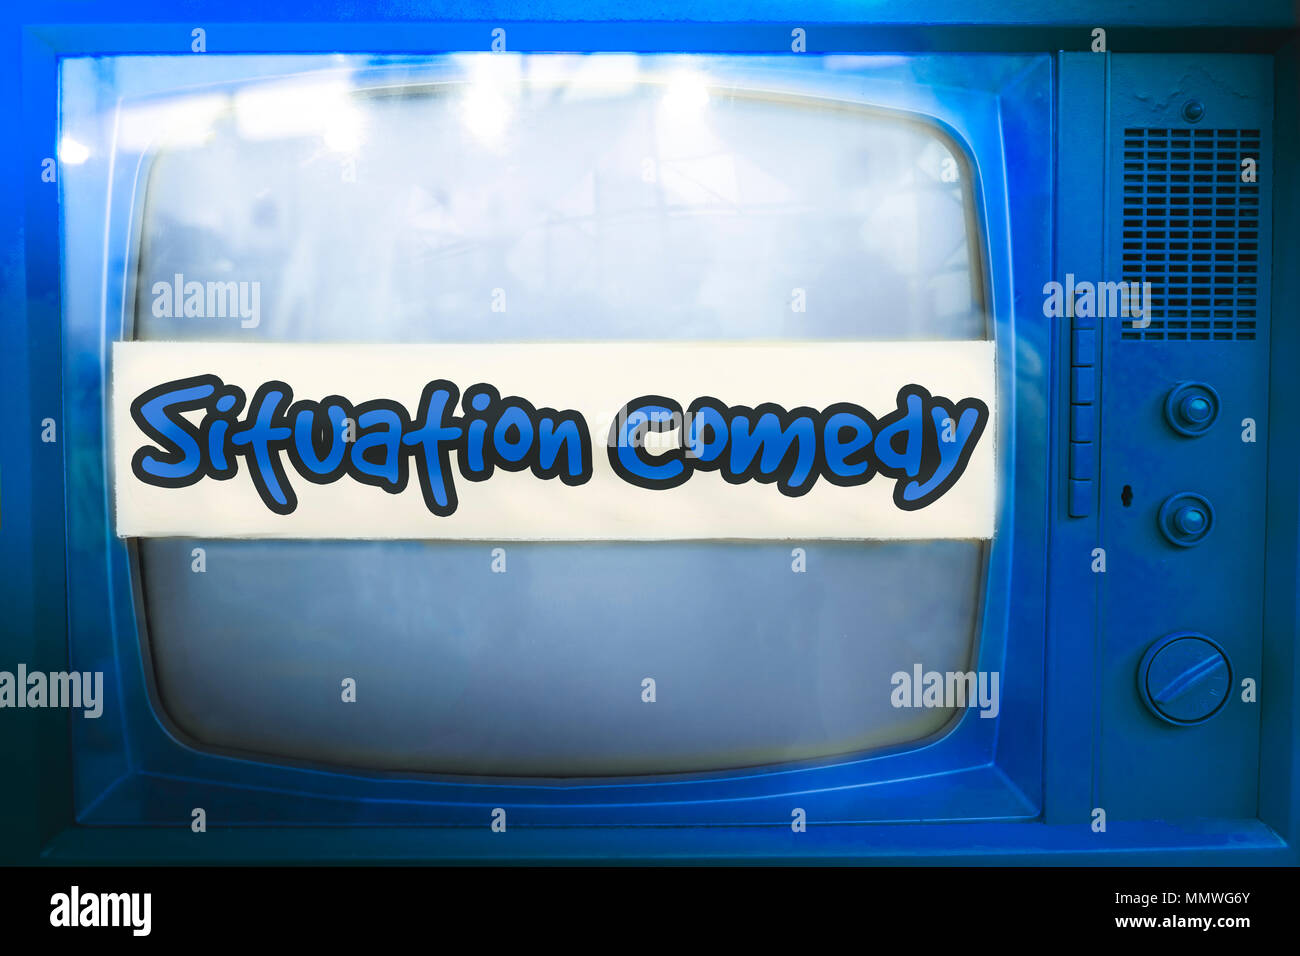 situation comedy blue tv series genre television label old tv text sitcom vintage retro background - Stock Image